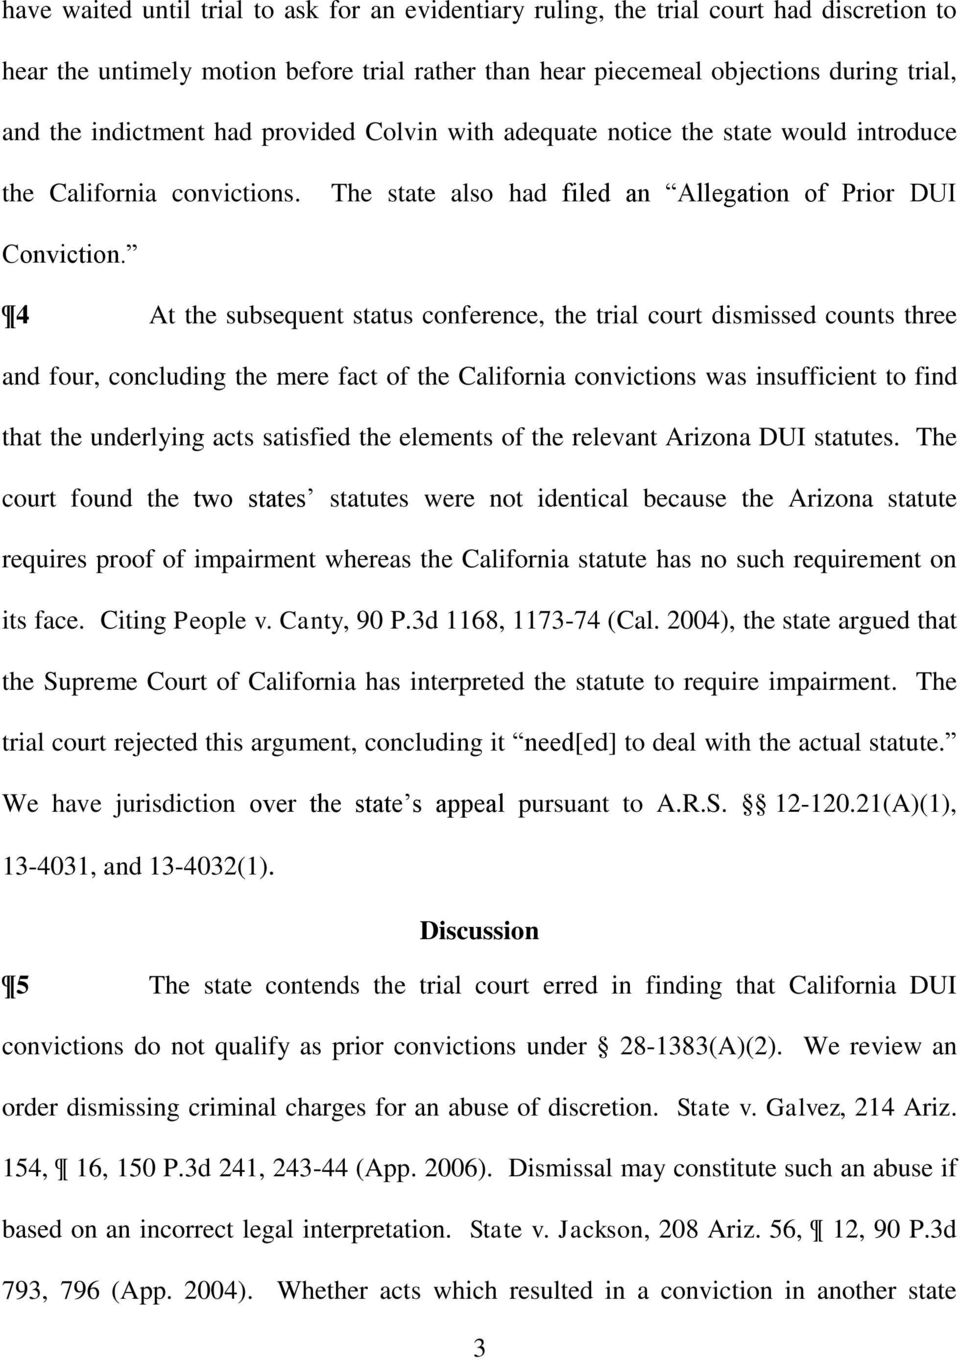 4 At the subsequent status conference, the trial court dismissed counts three and four, concluding the mere fact of the California convictions was insufficient to find that the underlying acts